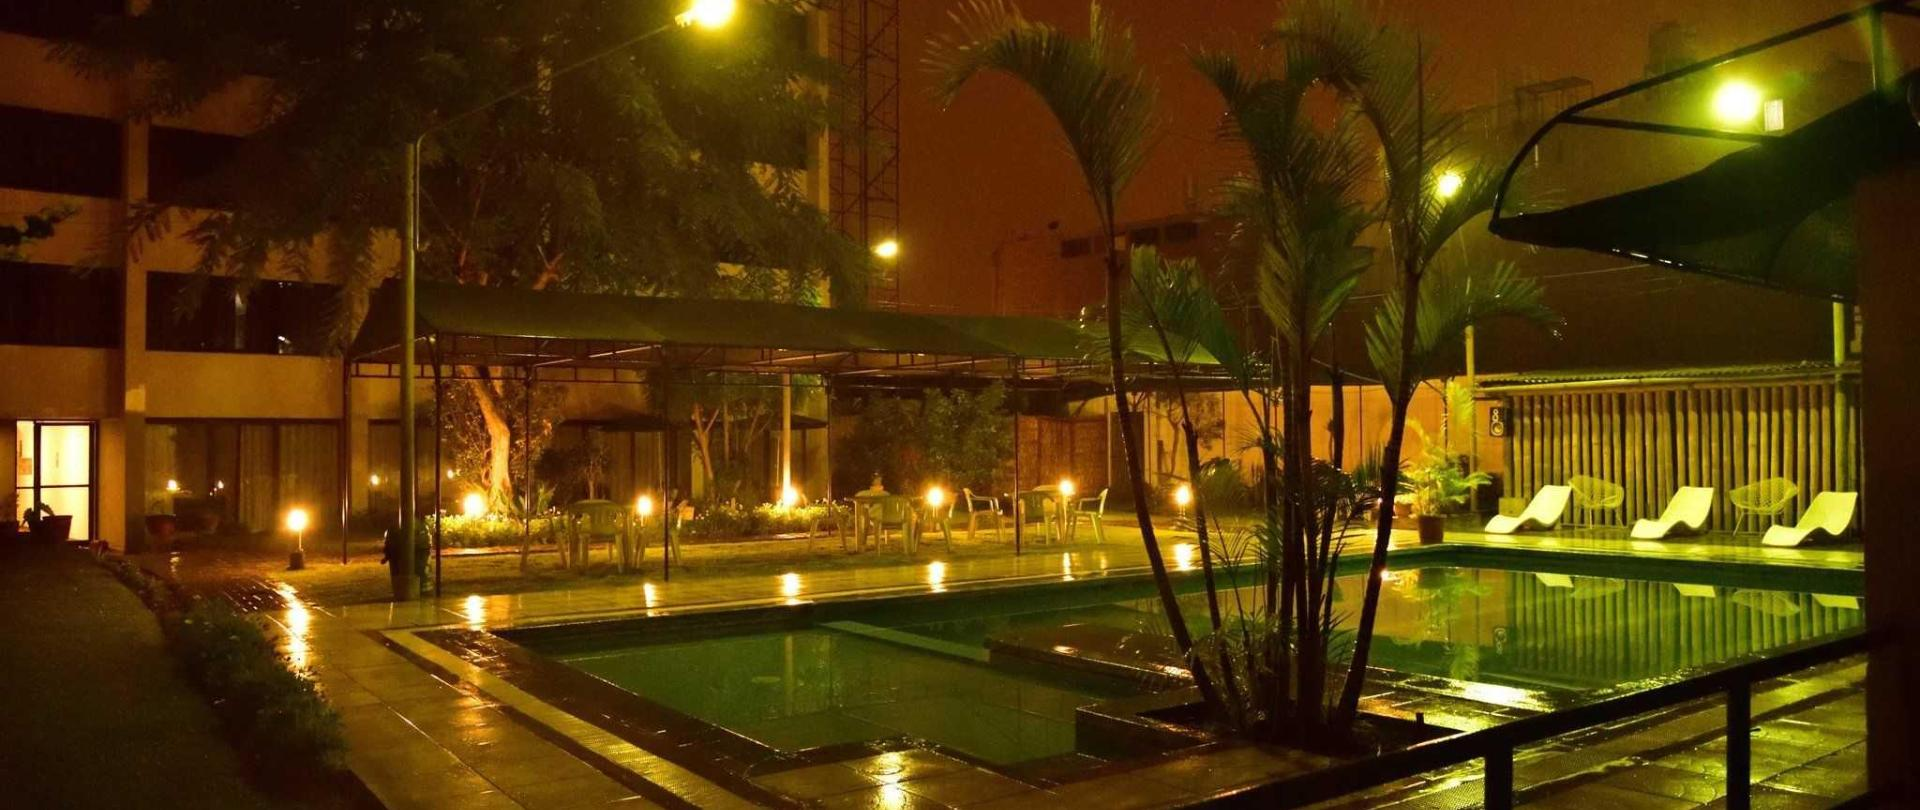 hotel-holiday-suites-3-estrellas-tacna-piscina-1.jpg